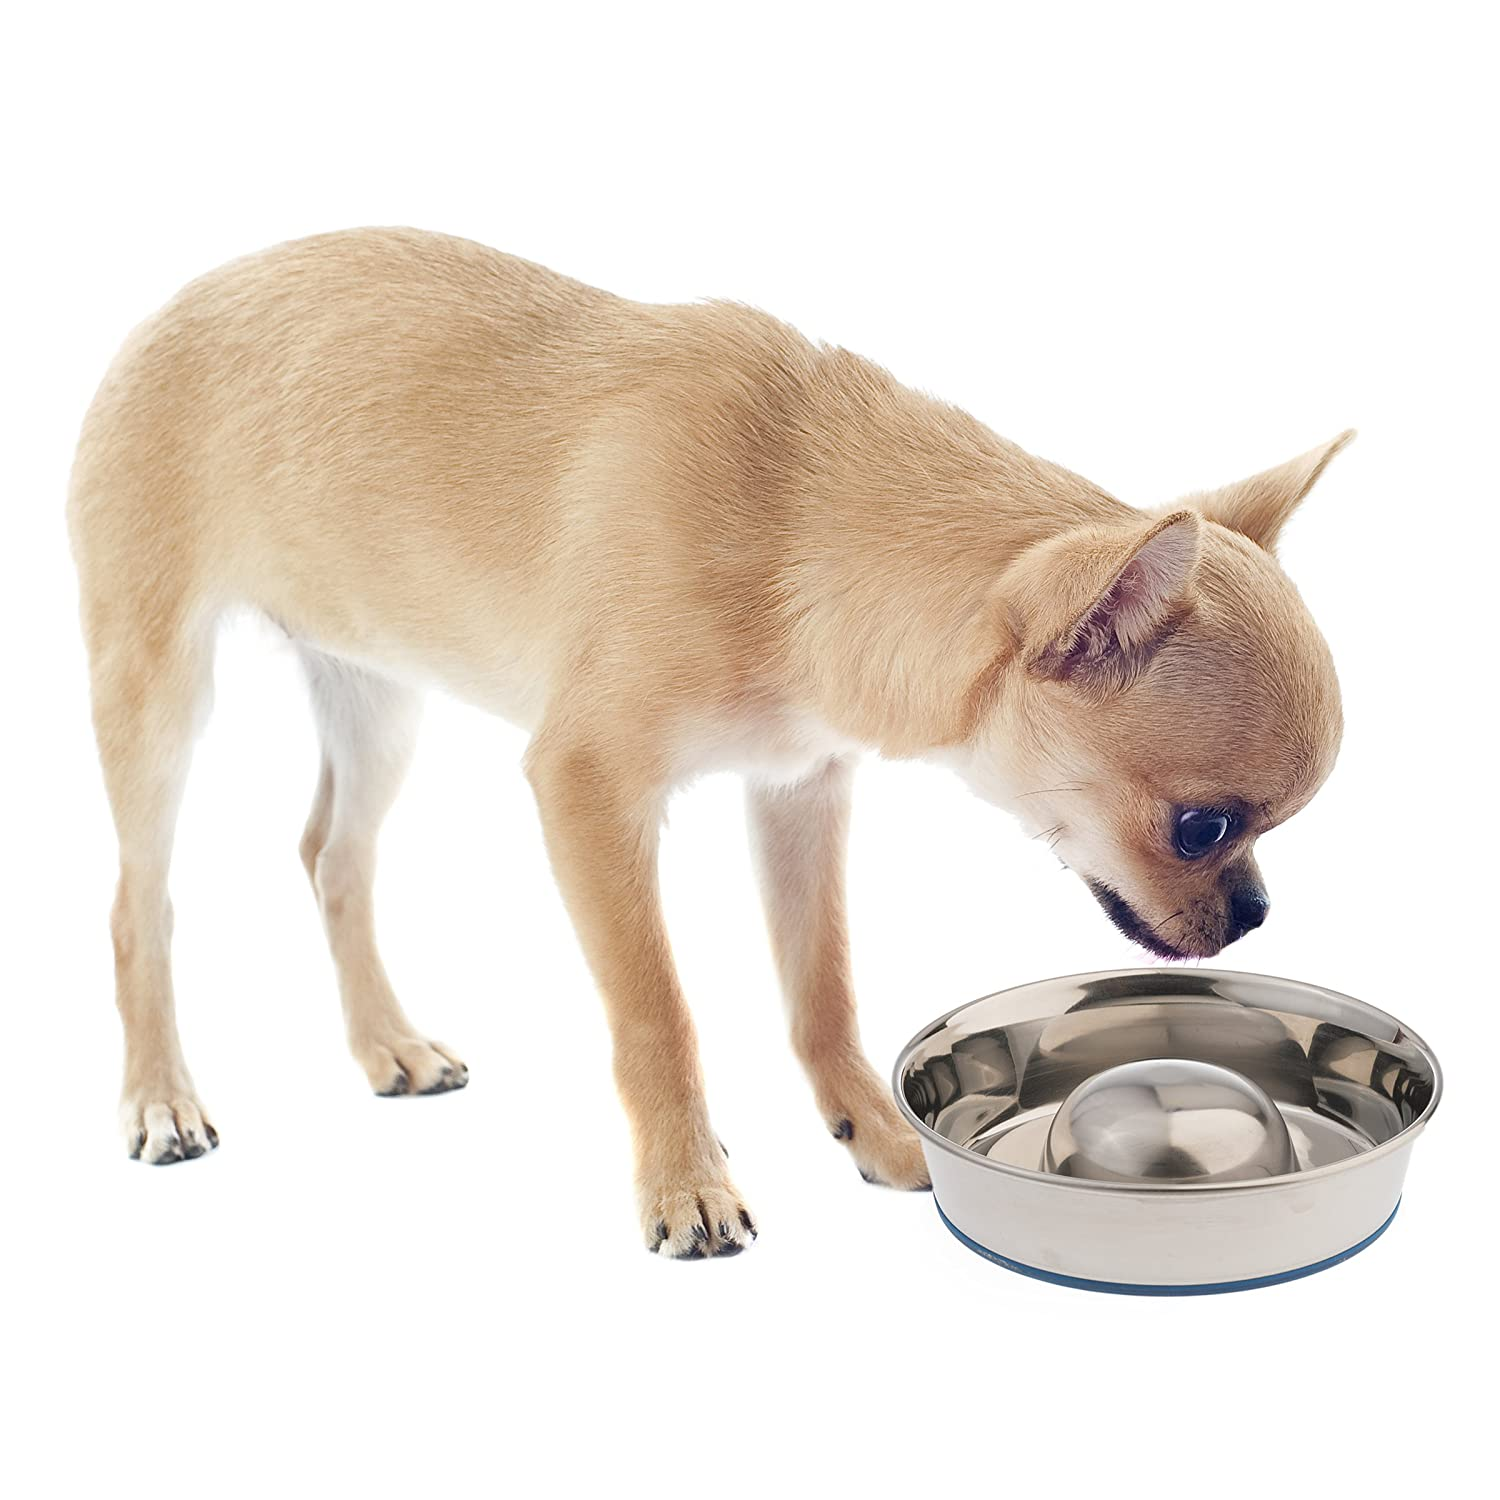 Pet Supplies : OurPets DuraPet Slow Feed Premium Stainless Steel Dog Bowl : Pet  Bowls : Amazon.com